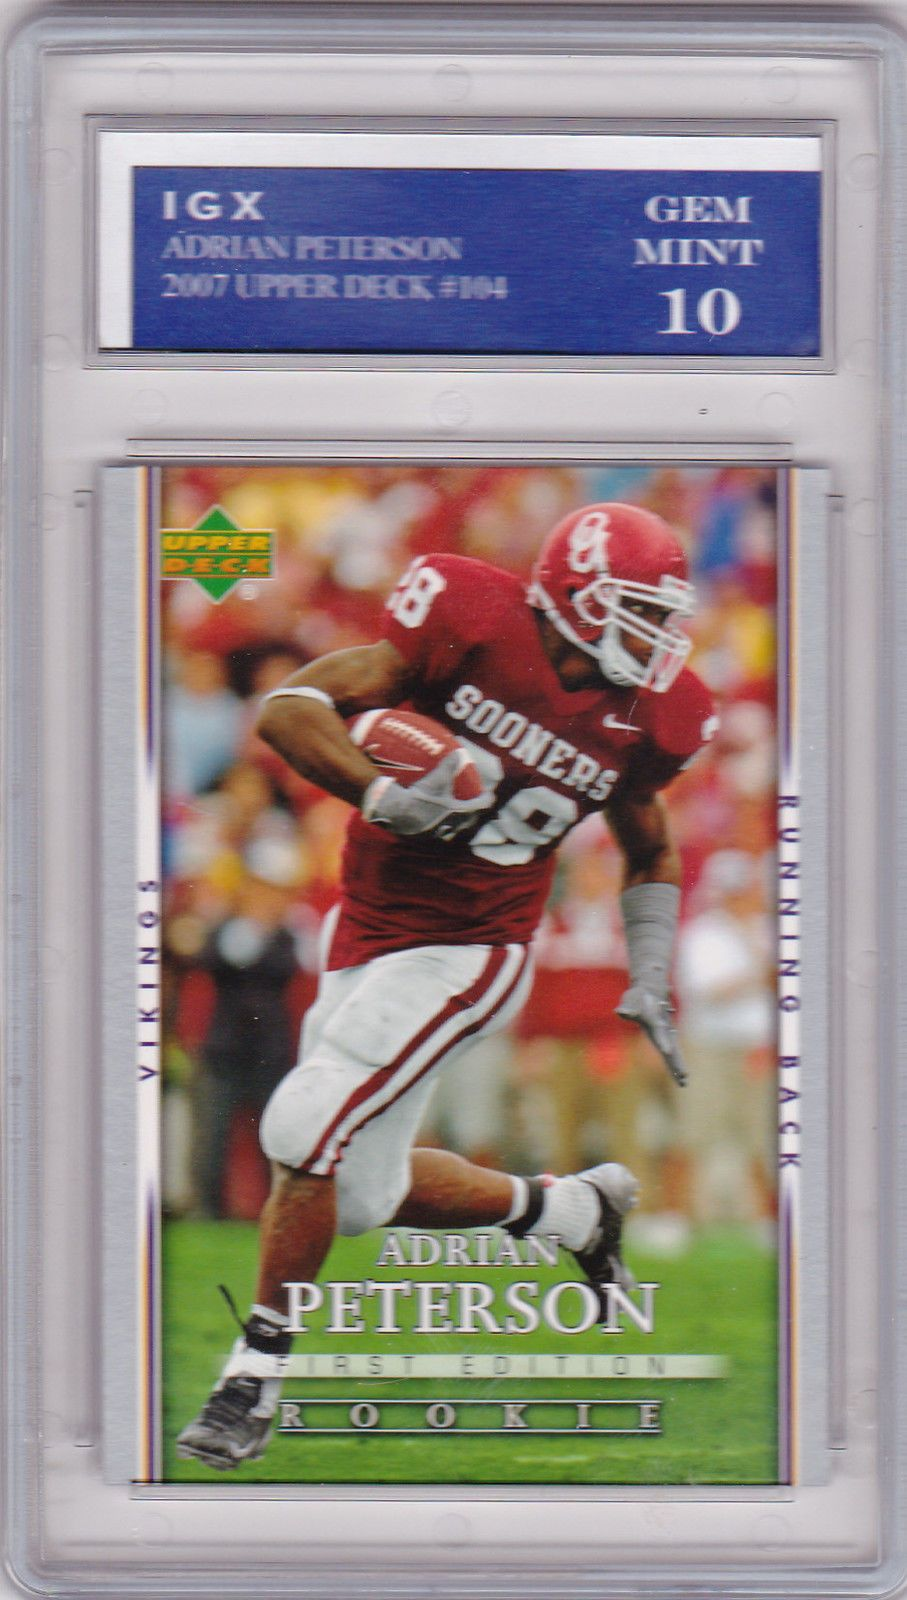 Adrian Peterson Rookie Card 1st Edition Rc Sooners Football